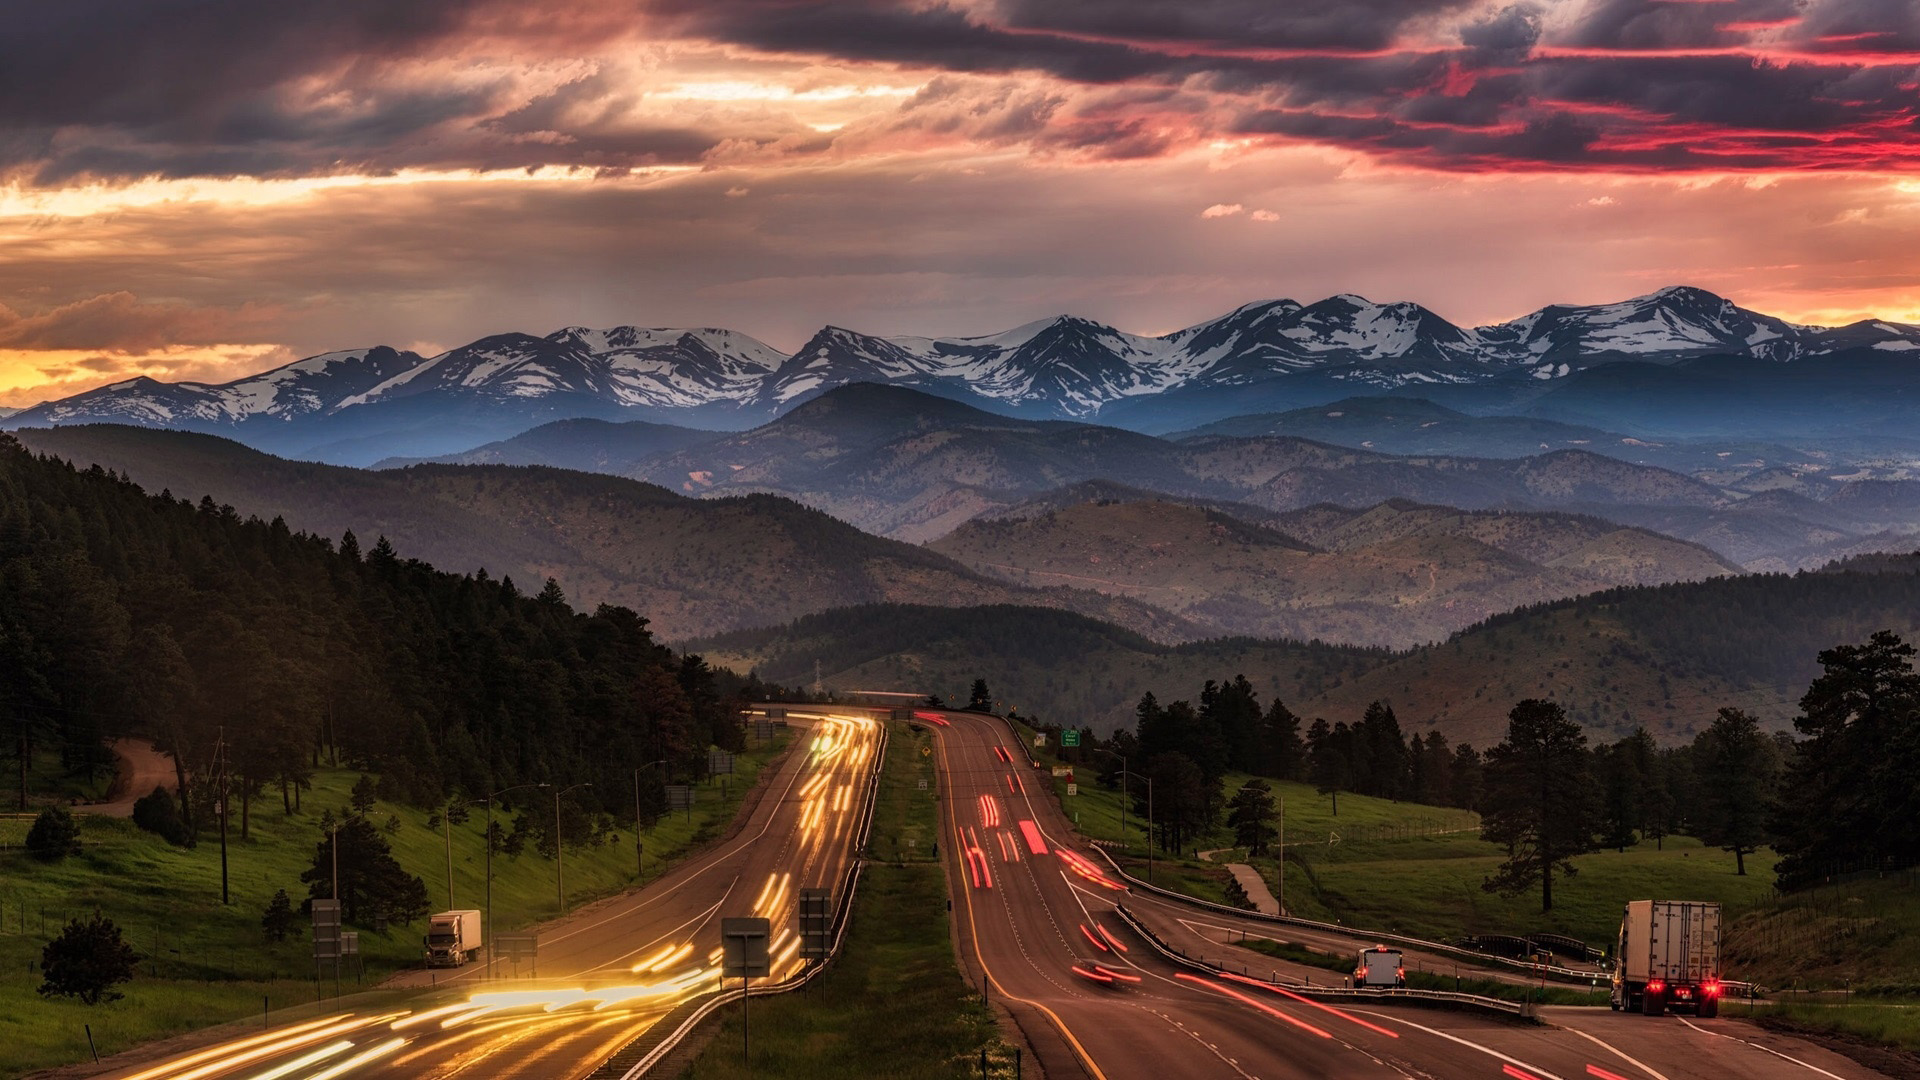 Nature Landscape Trees Mountains Highway Evening Sunset Snowy Peak Car Long Exposure Light Trails Fo 1920x1080